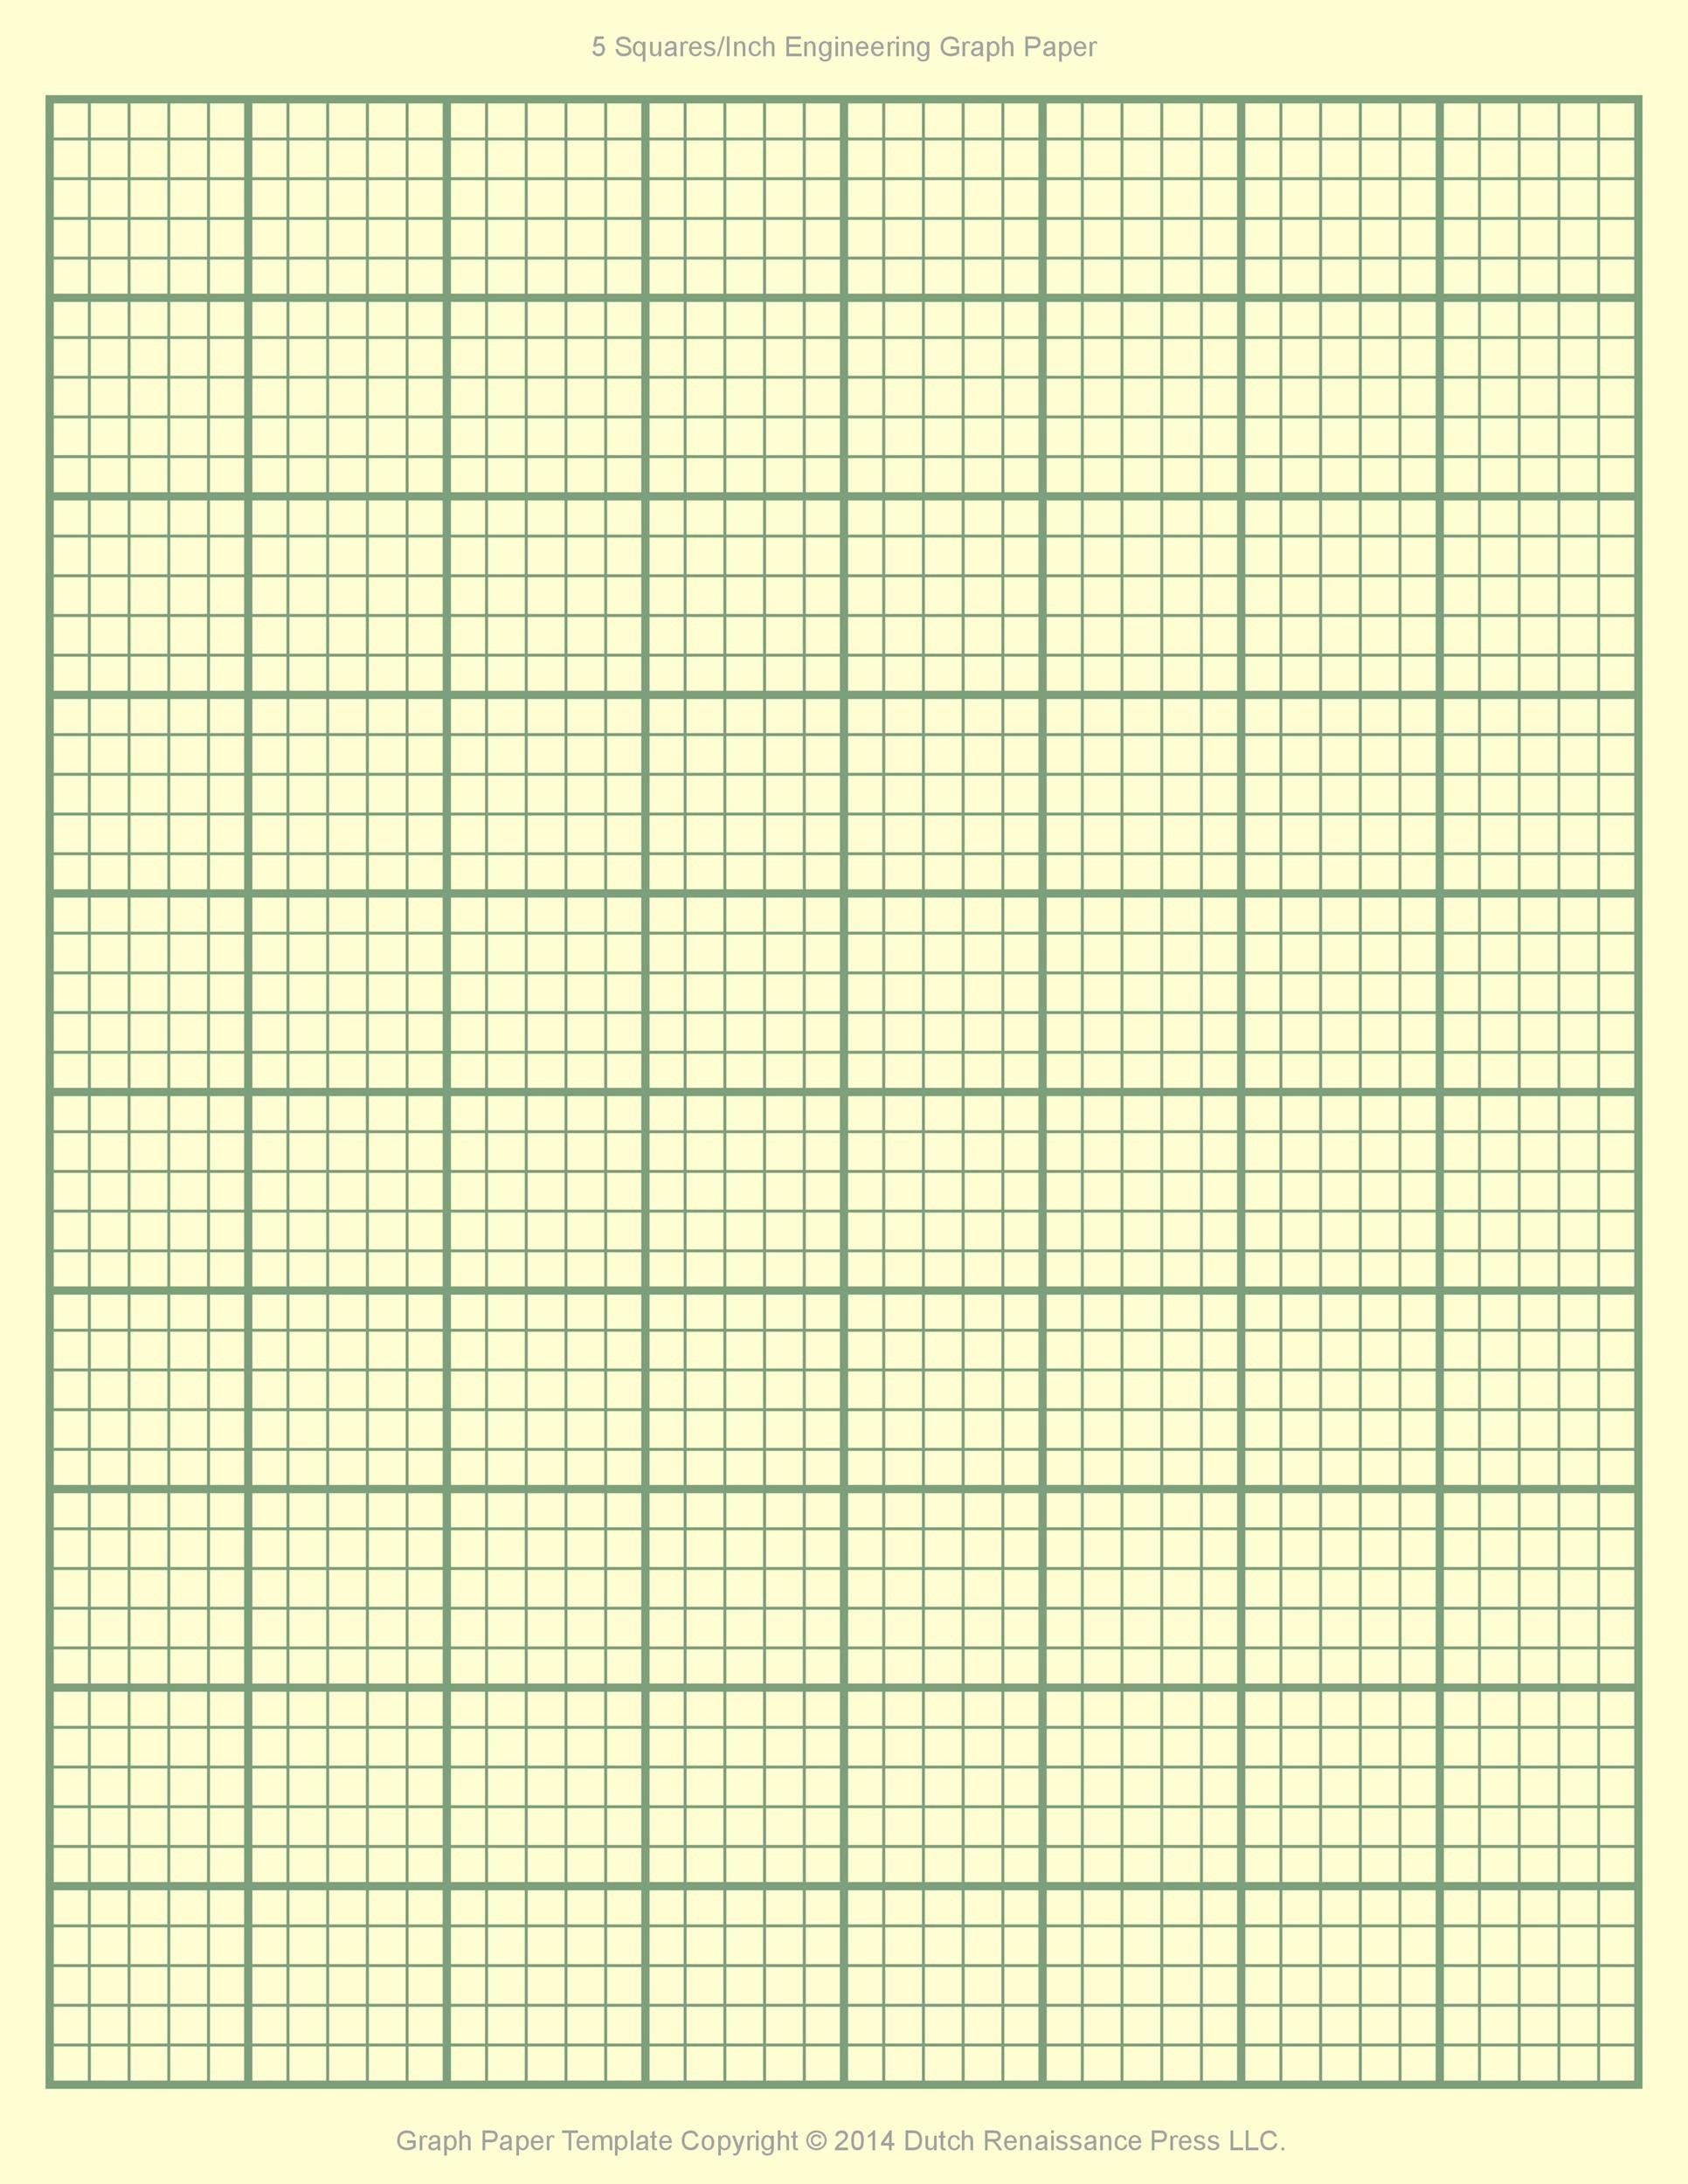 worksheet Graph Paper Image 30 free printable graph paper templates word pdf template lab 06